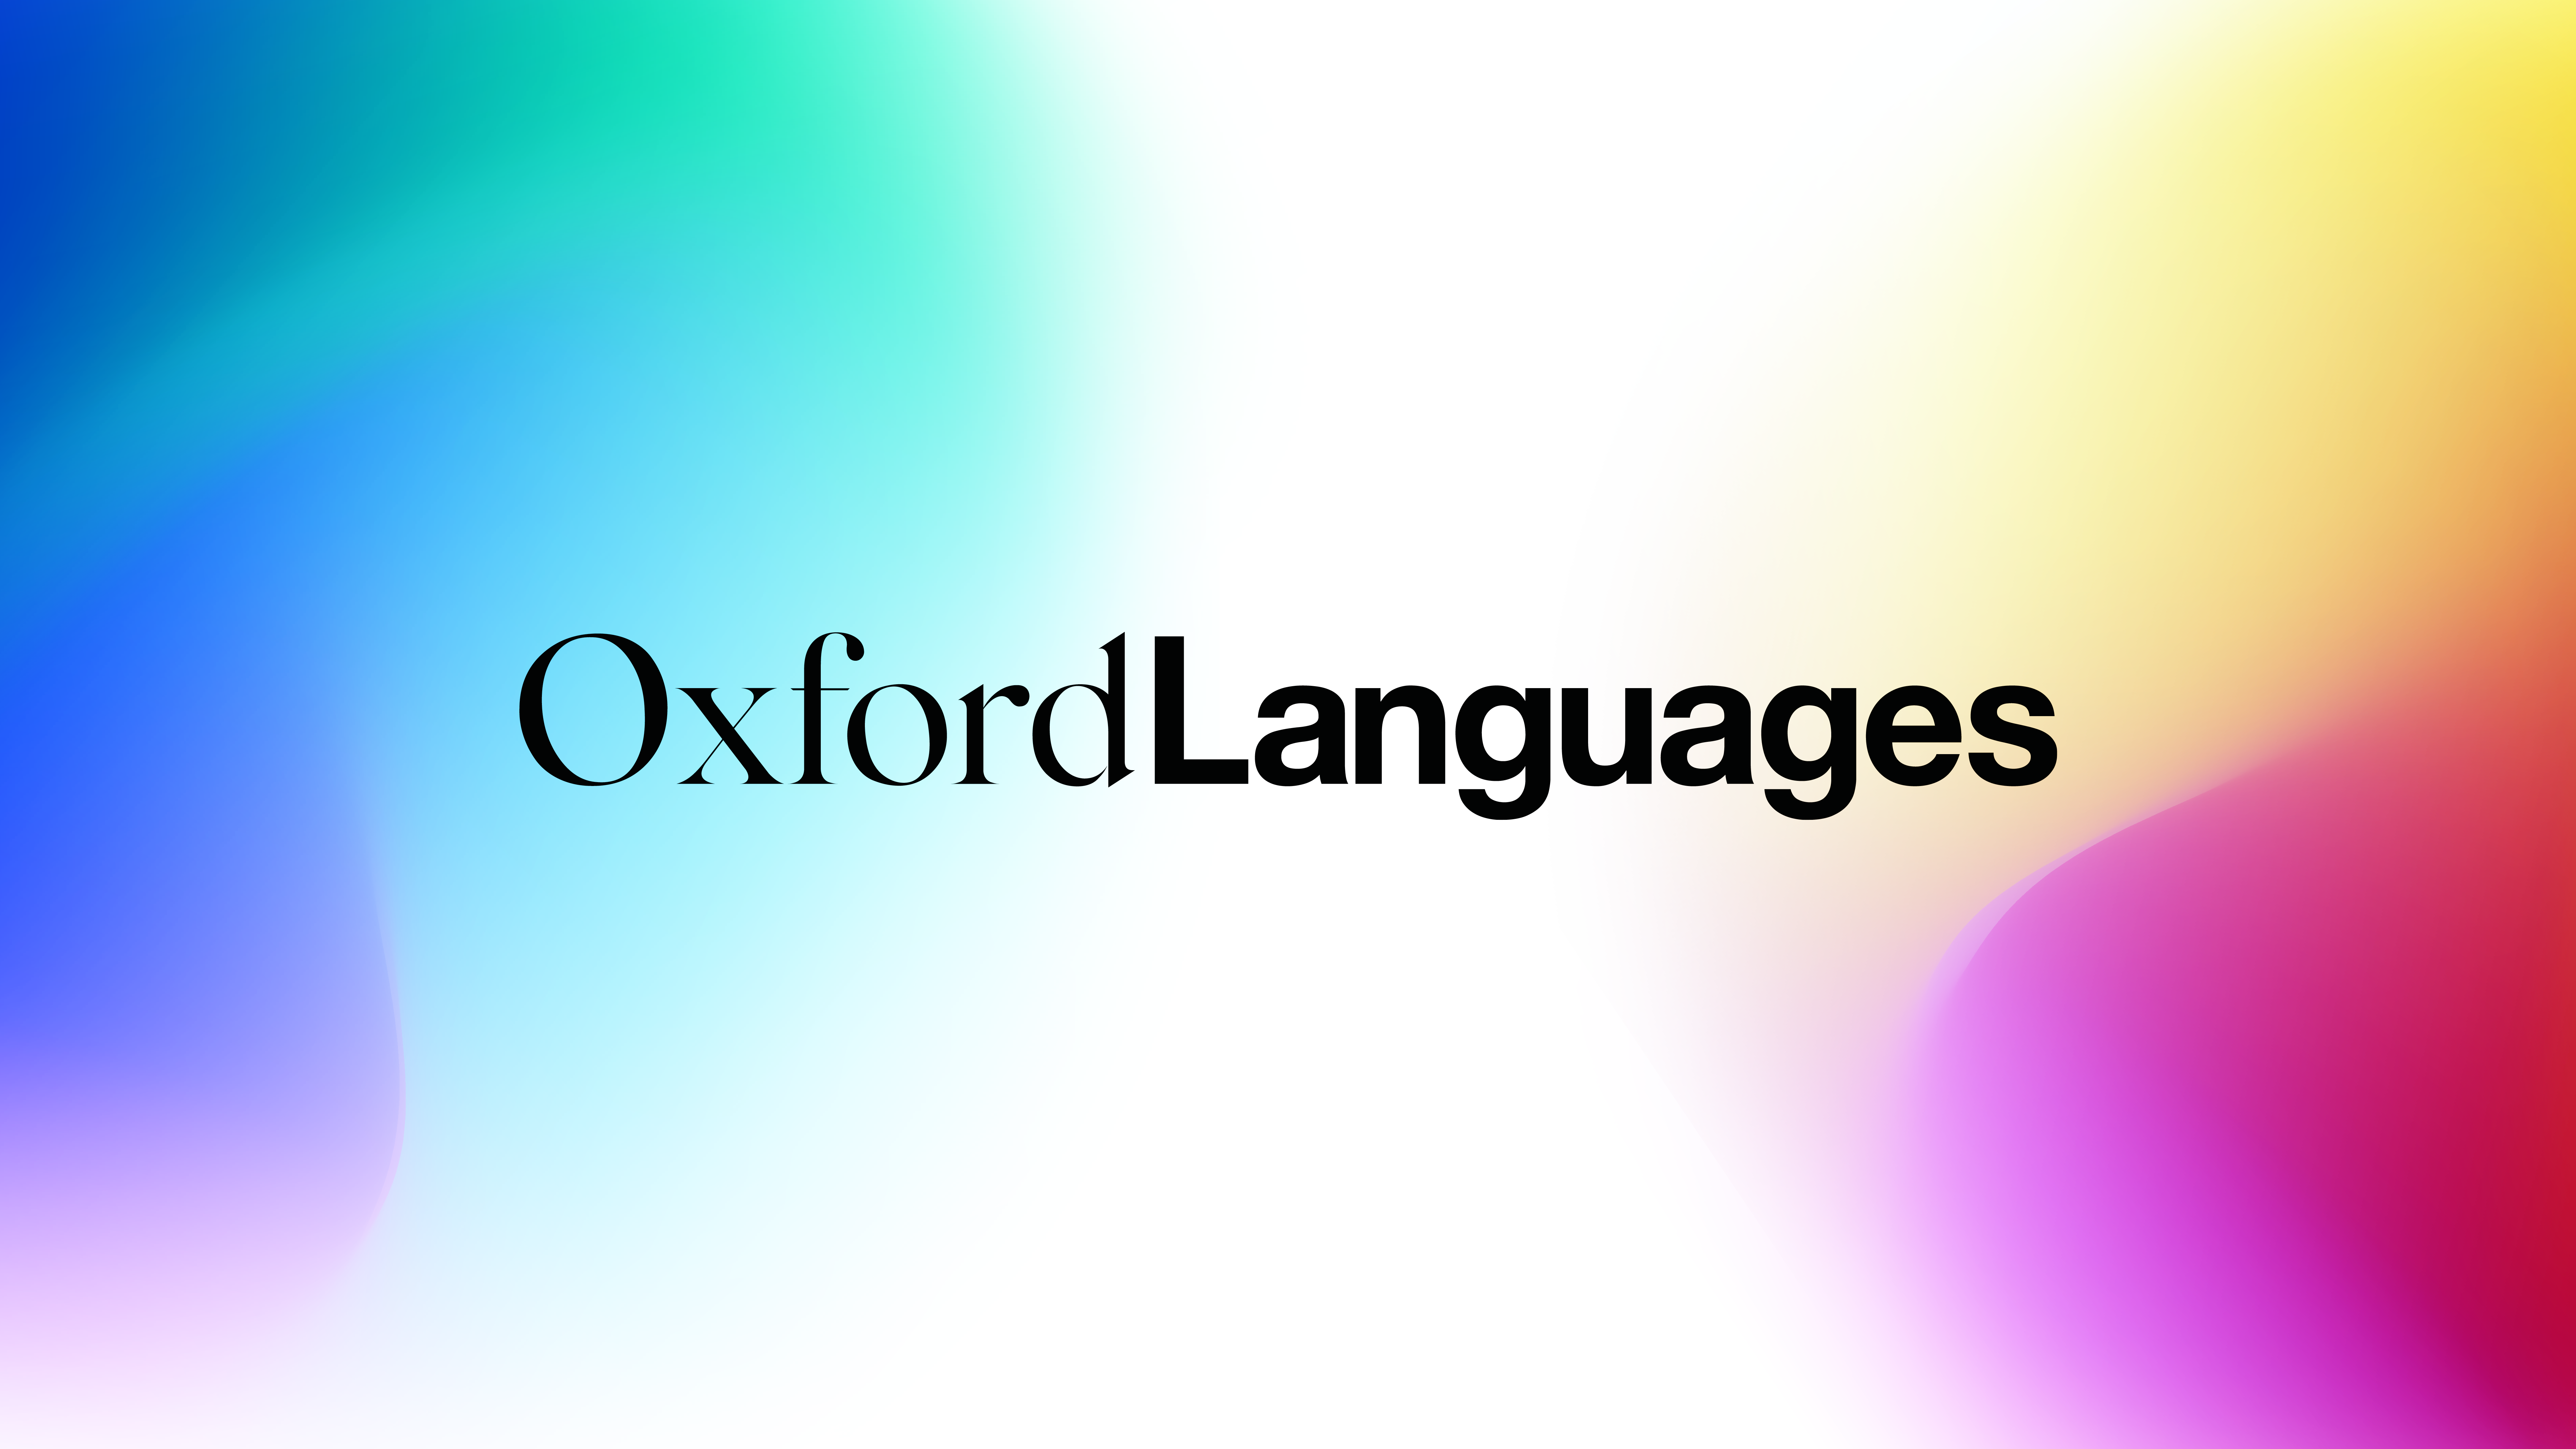 Oxford Languages